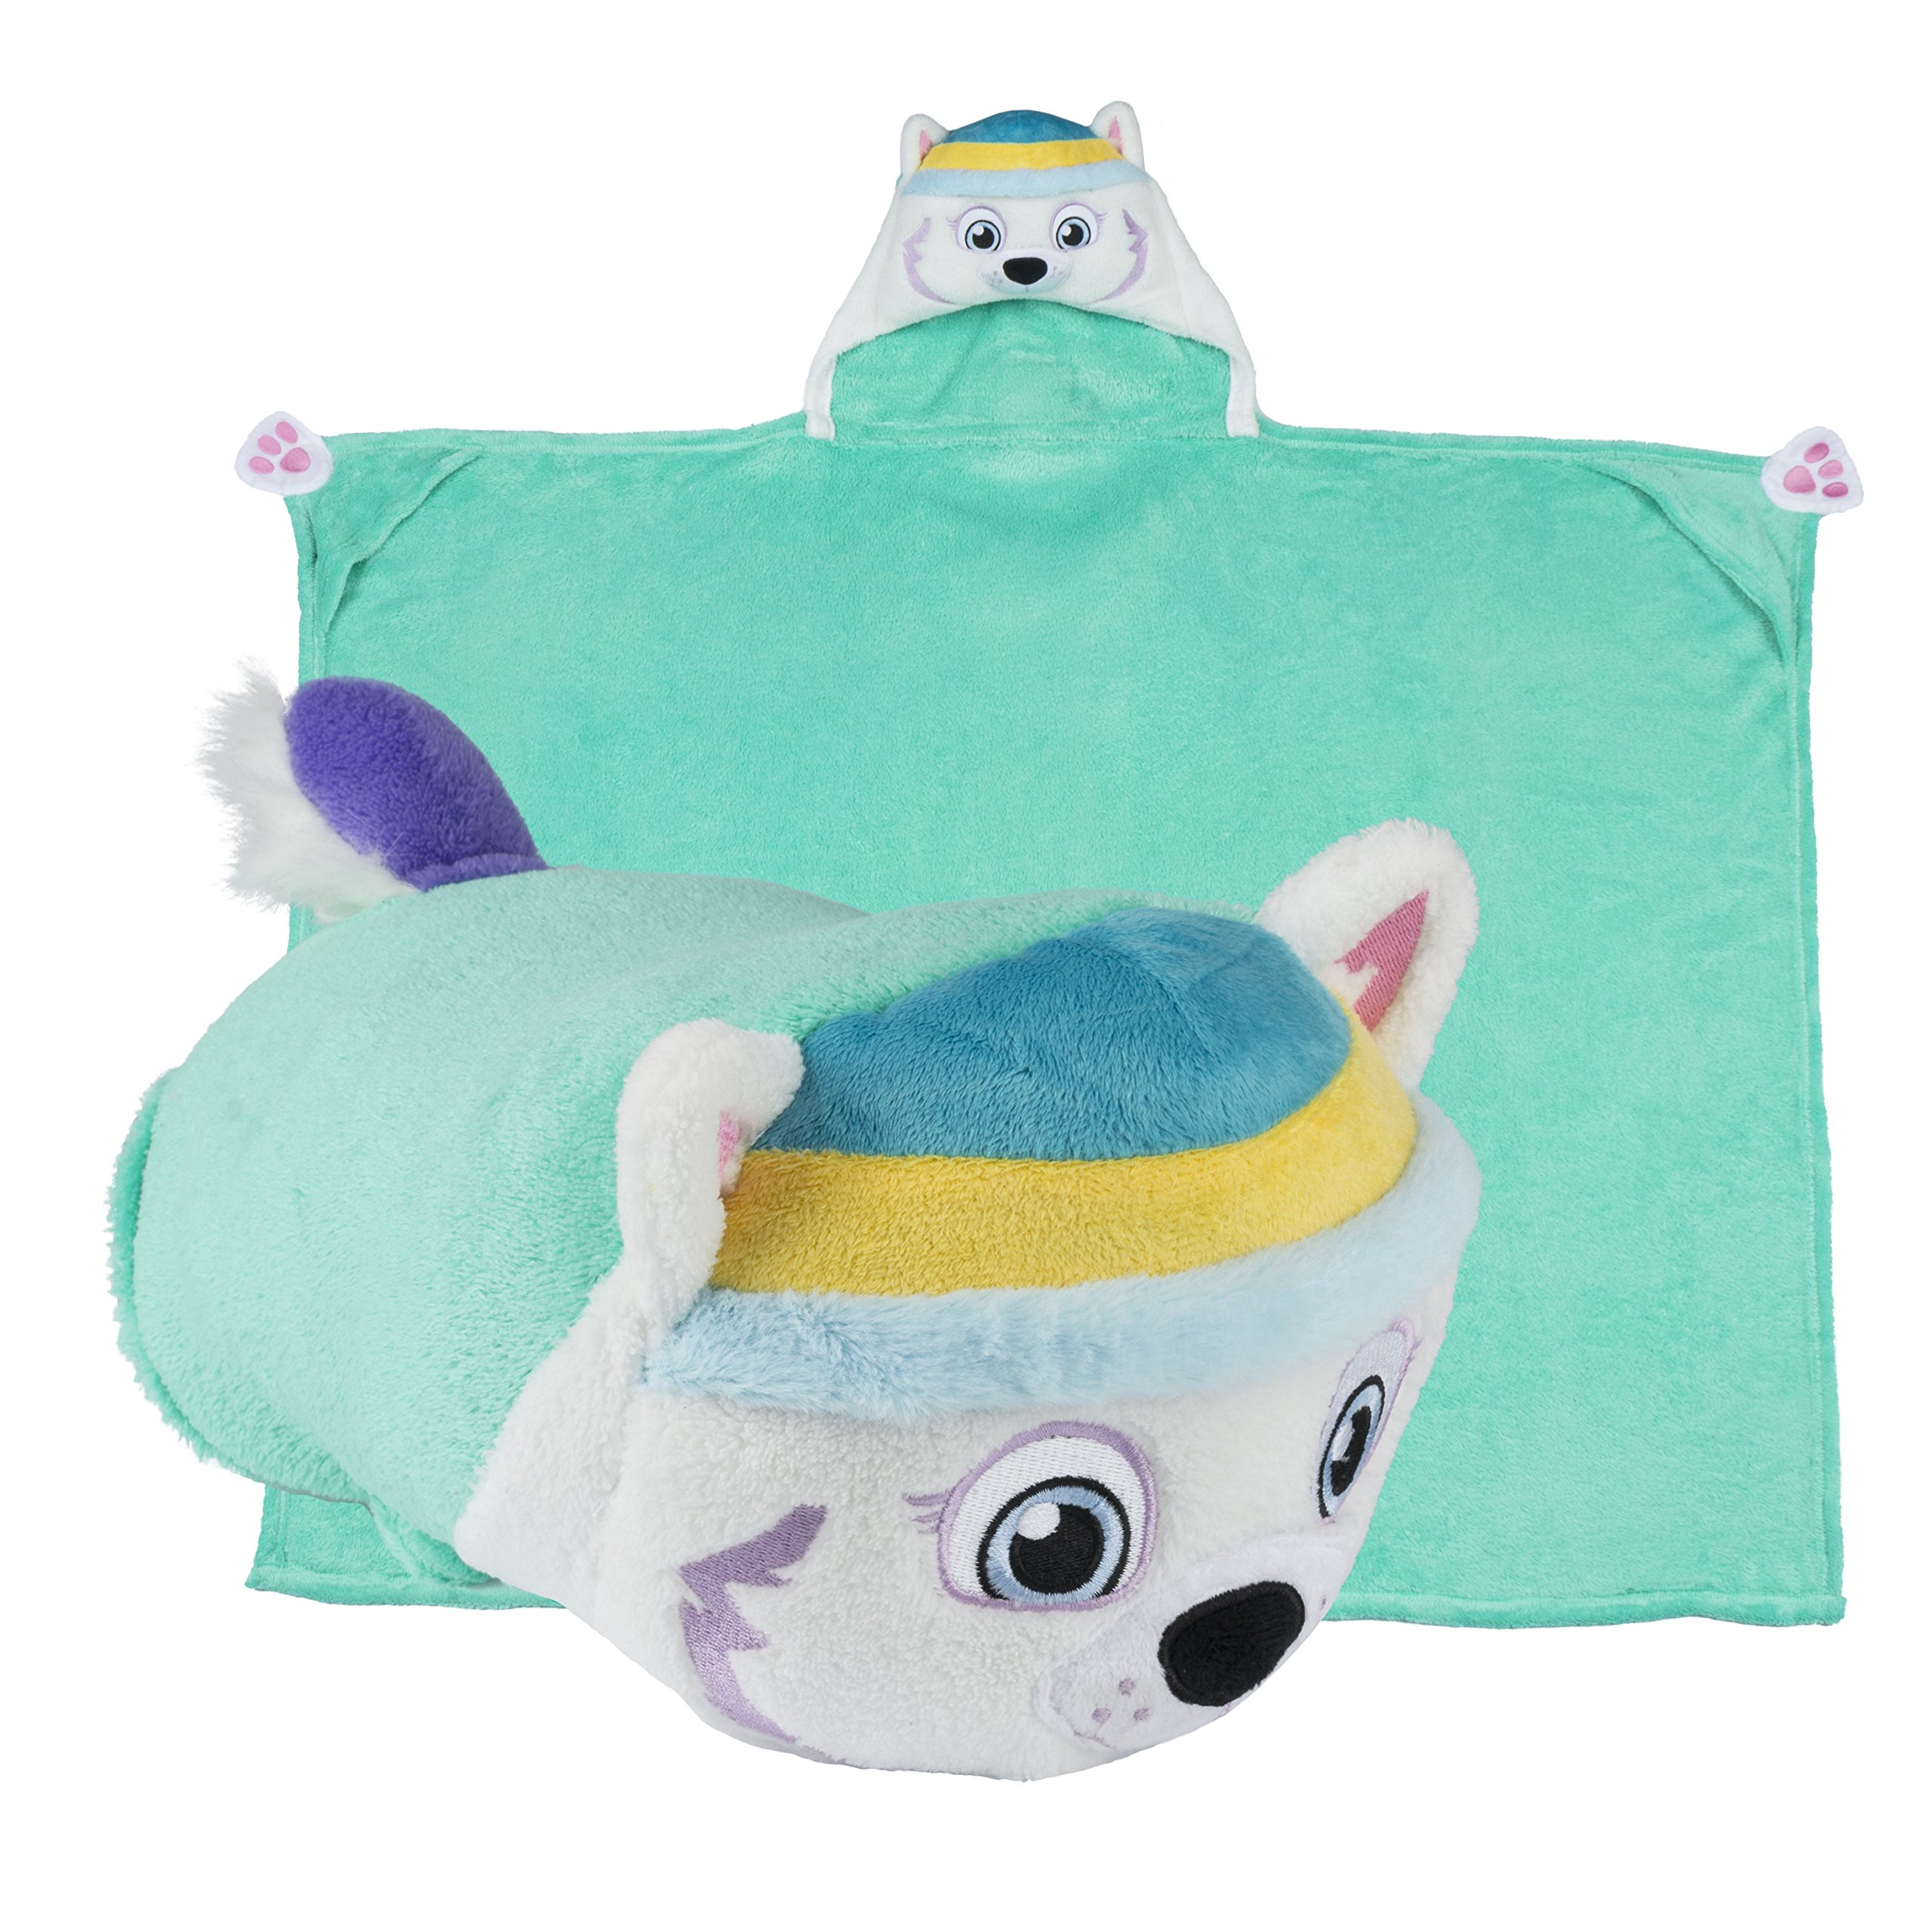 Comfy Critters Stuffed Animal Blanket – PAW Patrol Everest – Kids huggable pillow and blanket perfect for pretend play, travel, nap time.